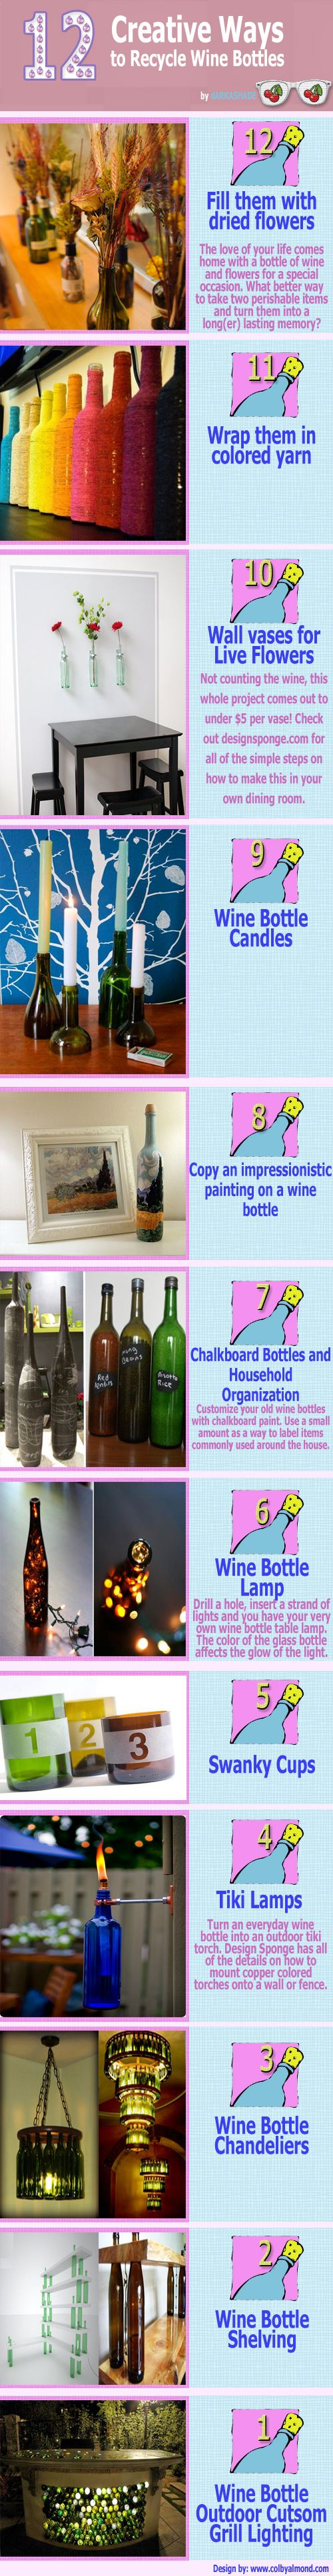 12 ways to recycle wine bottles infographic recycled